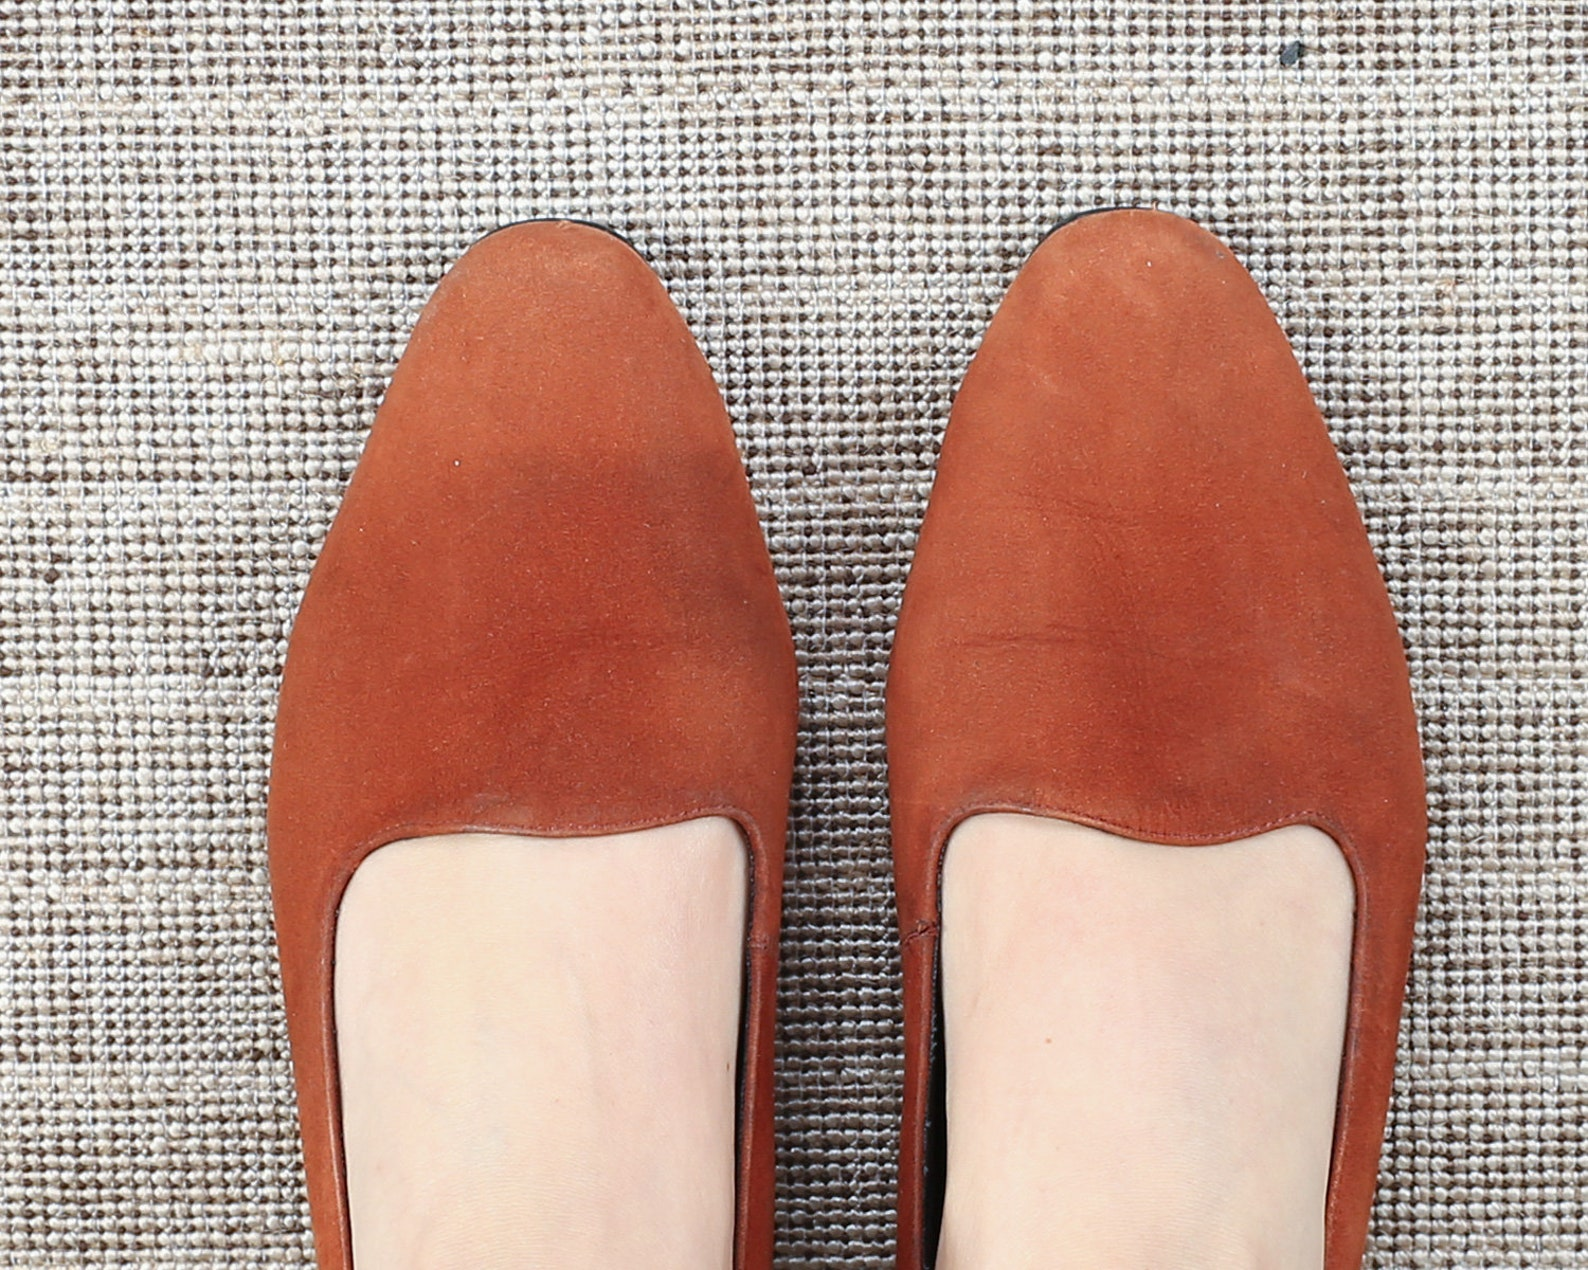 us women 8.5 rustic suede leather flats 80s brown ballet flats formal office low heel pumps vintage shoes 1980s leather sole . e